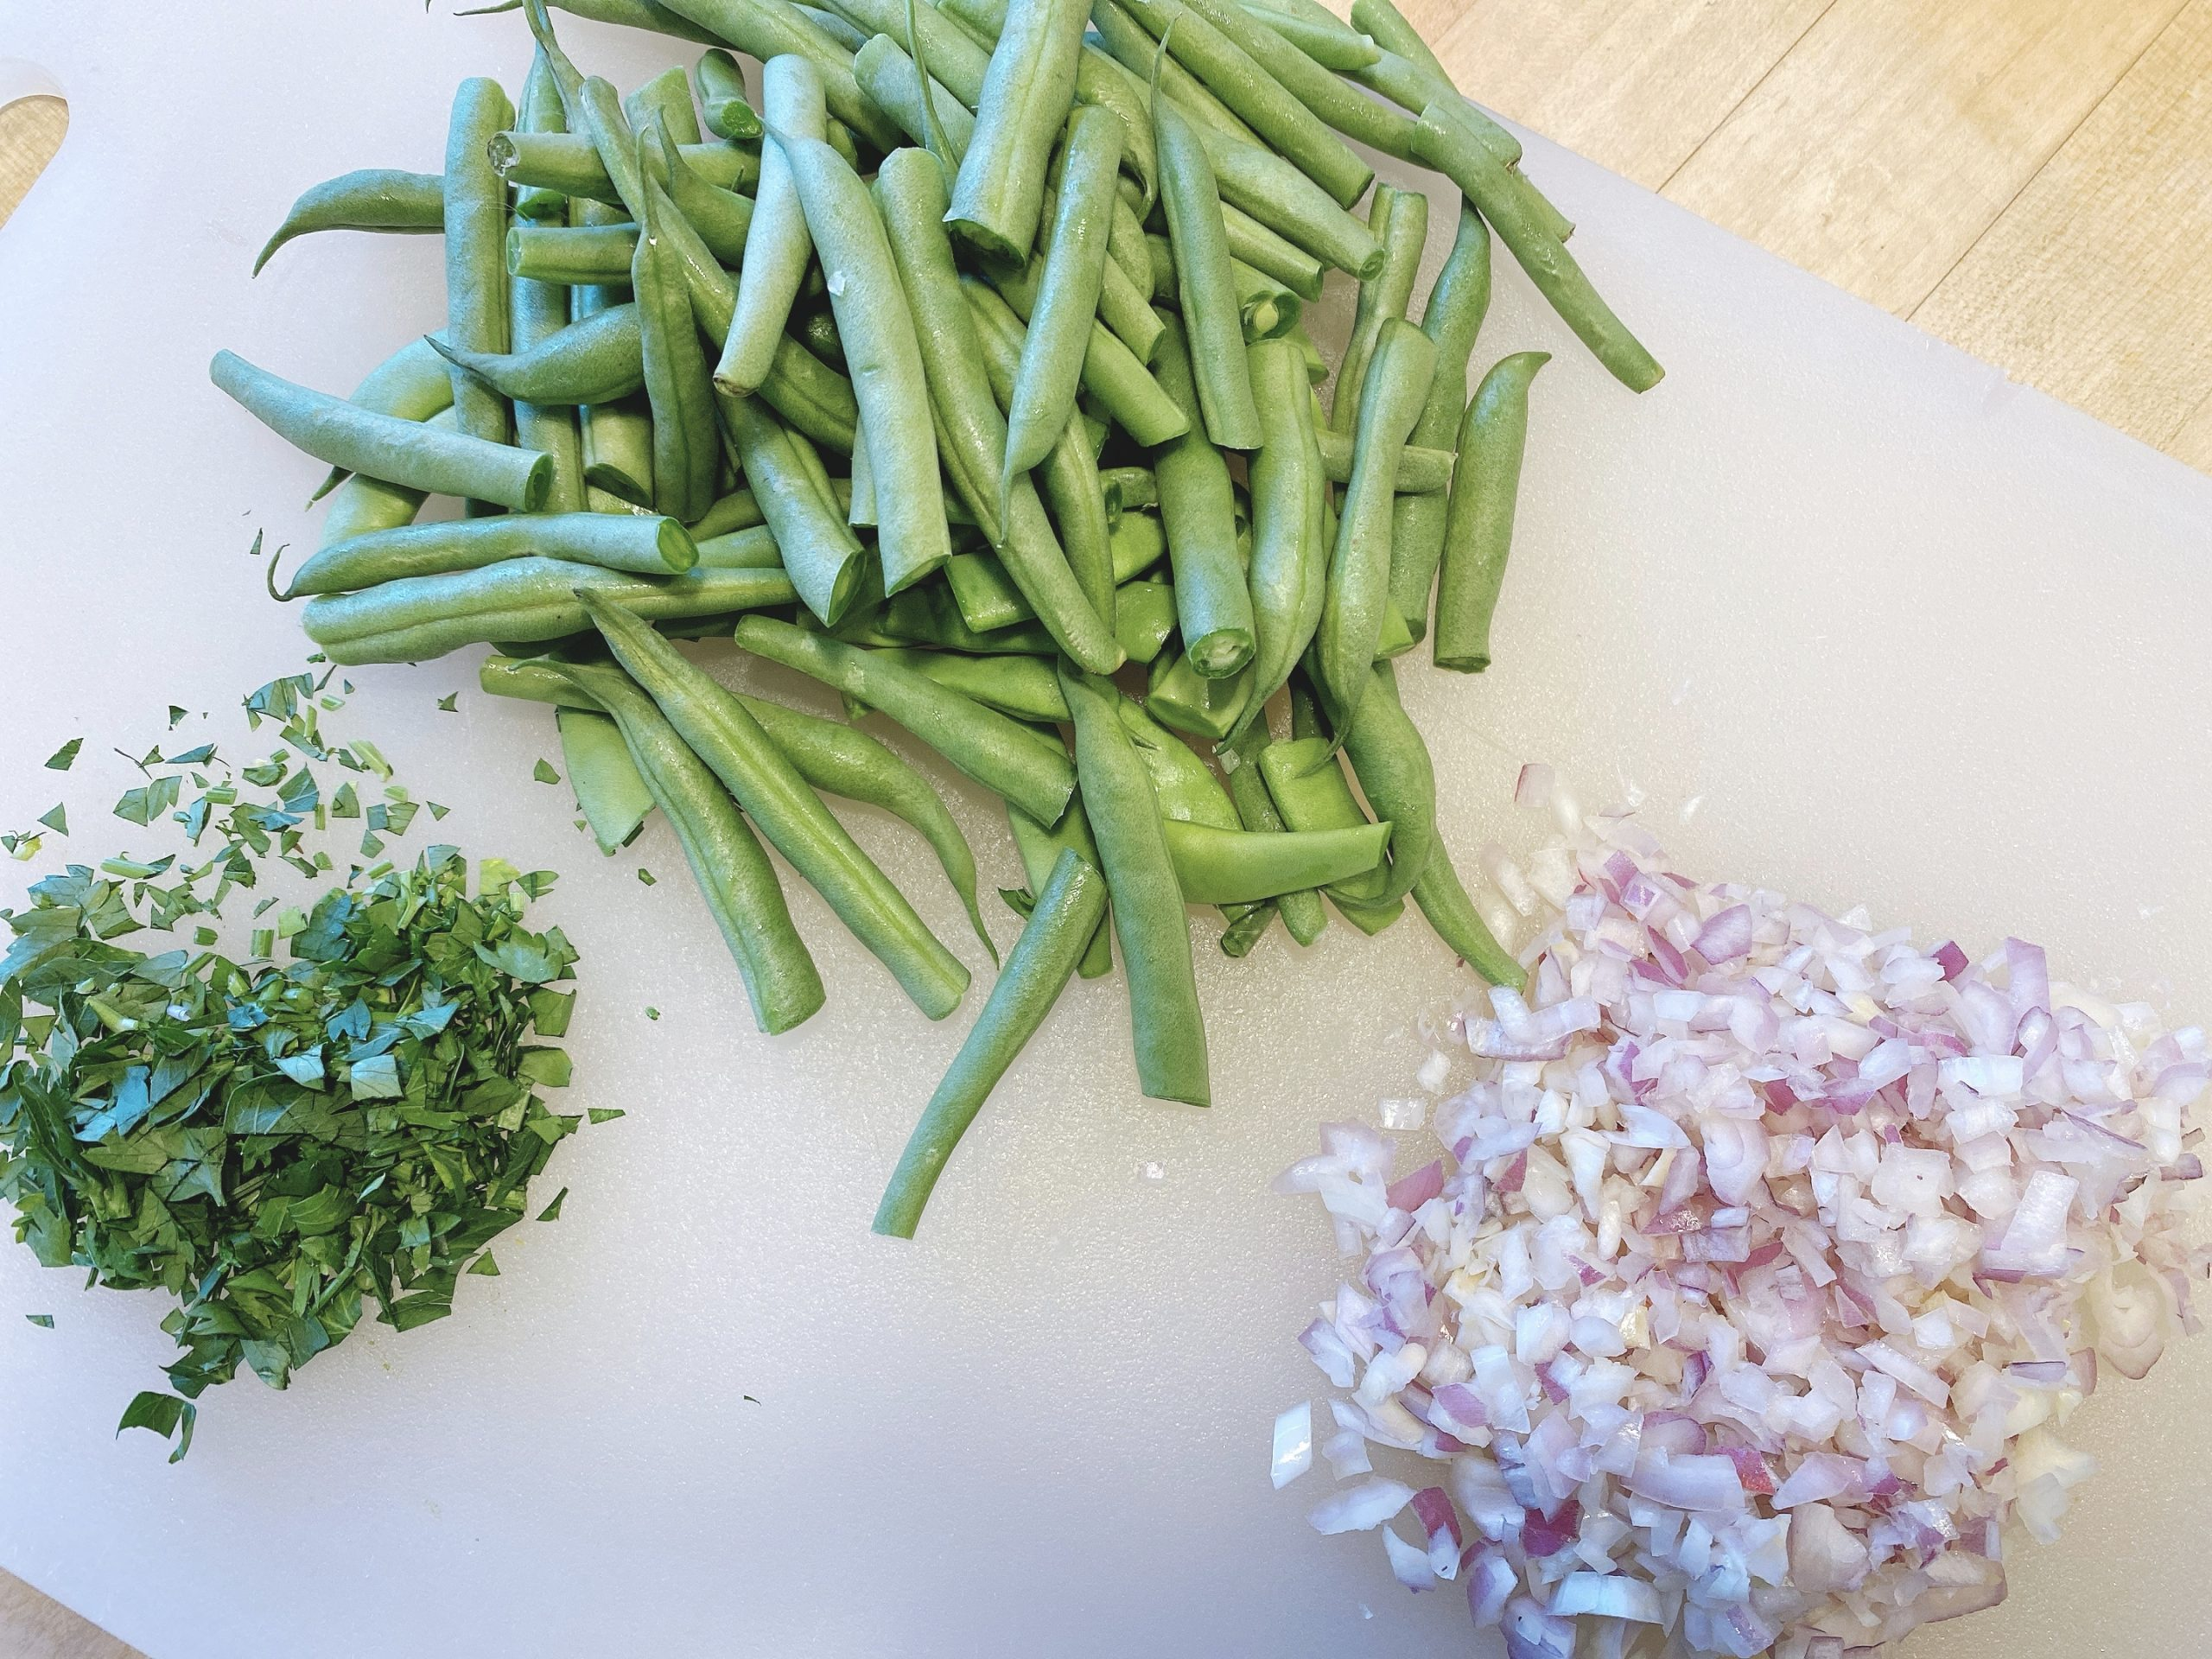 Ingredients for pasta with green beans including chopped onions and parsley